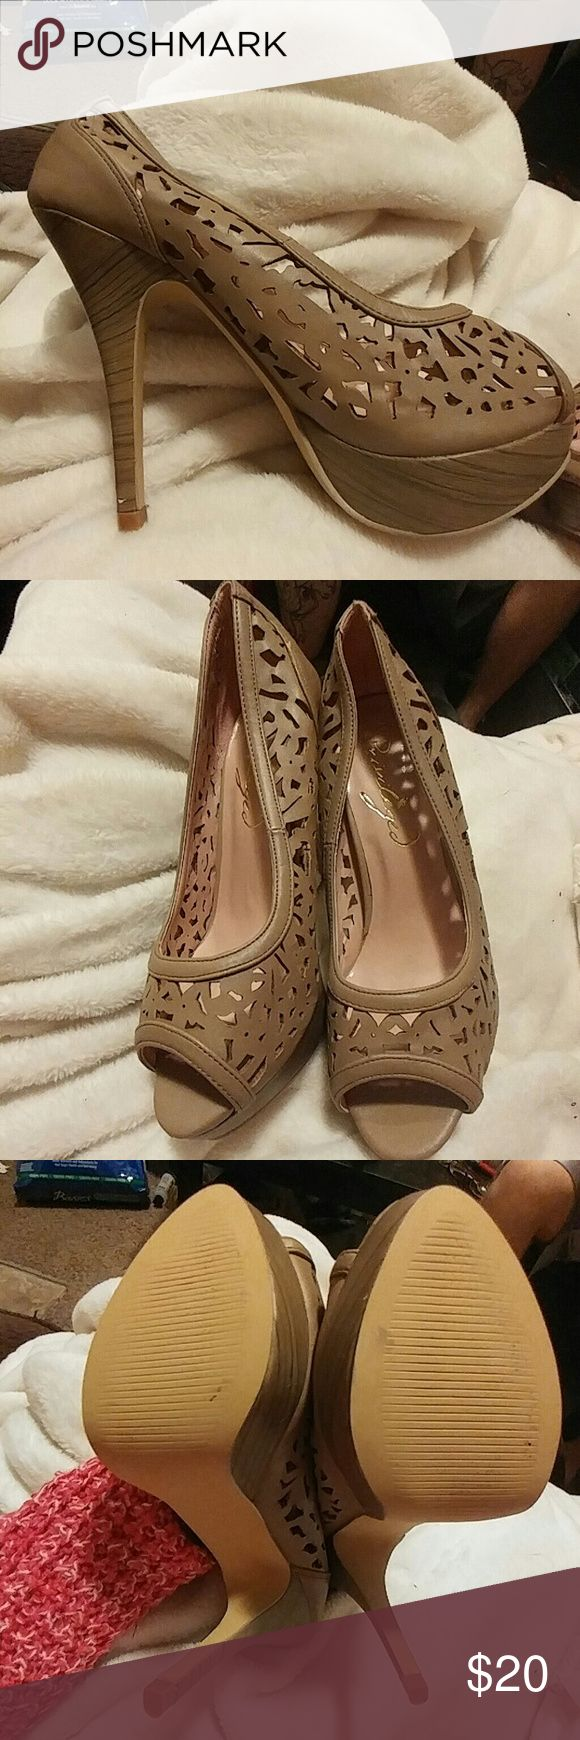 Beige heels Cut out stilleto worn only inside once privileged Shoes Heels